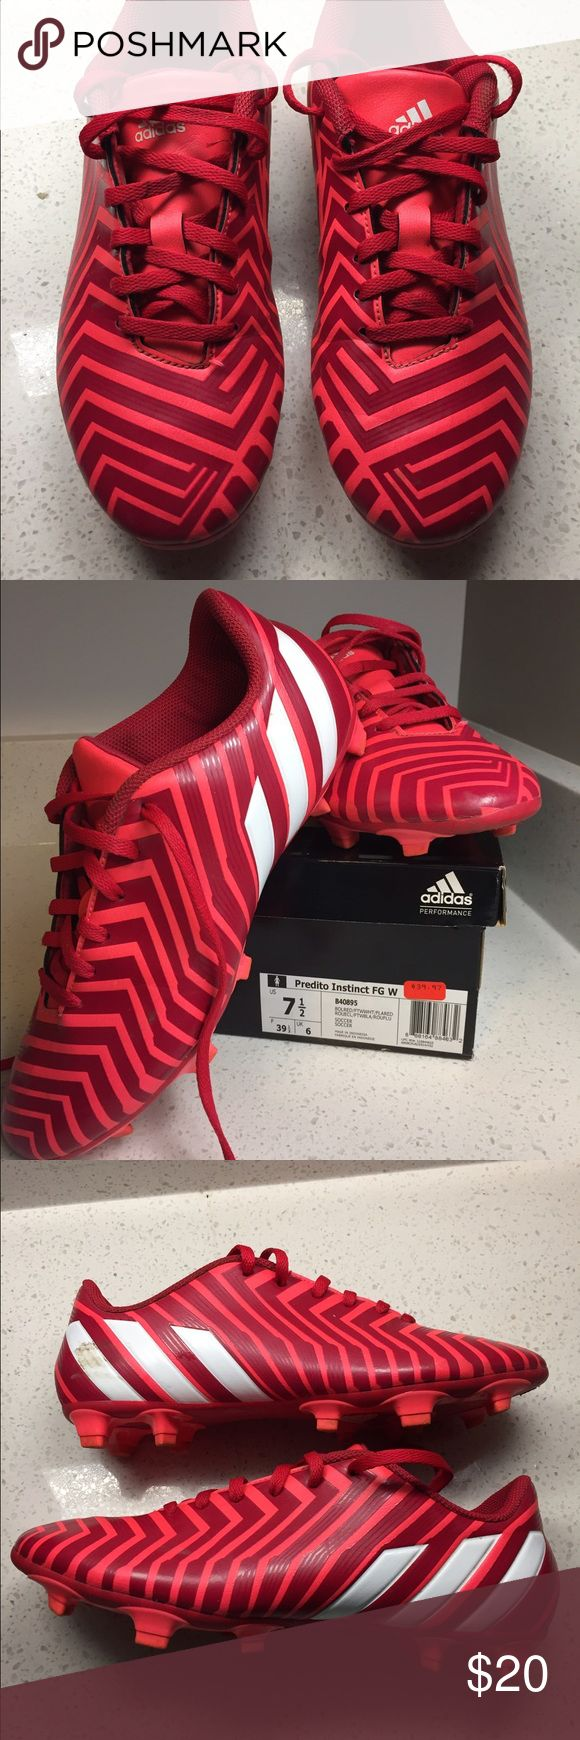 Hot Pink Adidas Cleats These women's Adidas Predito Instinct cleats are pre-owned but it great condition! There are minor scuffs on the outside (shown in photos) and minor wear inside. They are a 7.5 but the shoe is known to run small so they fit more like a 6.5/7. Adidas Shoes Athletic Shoes